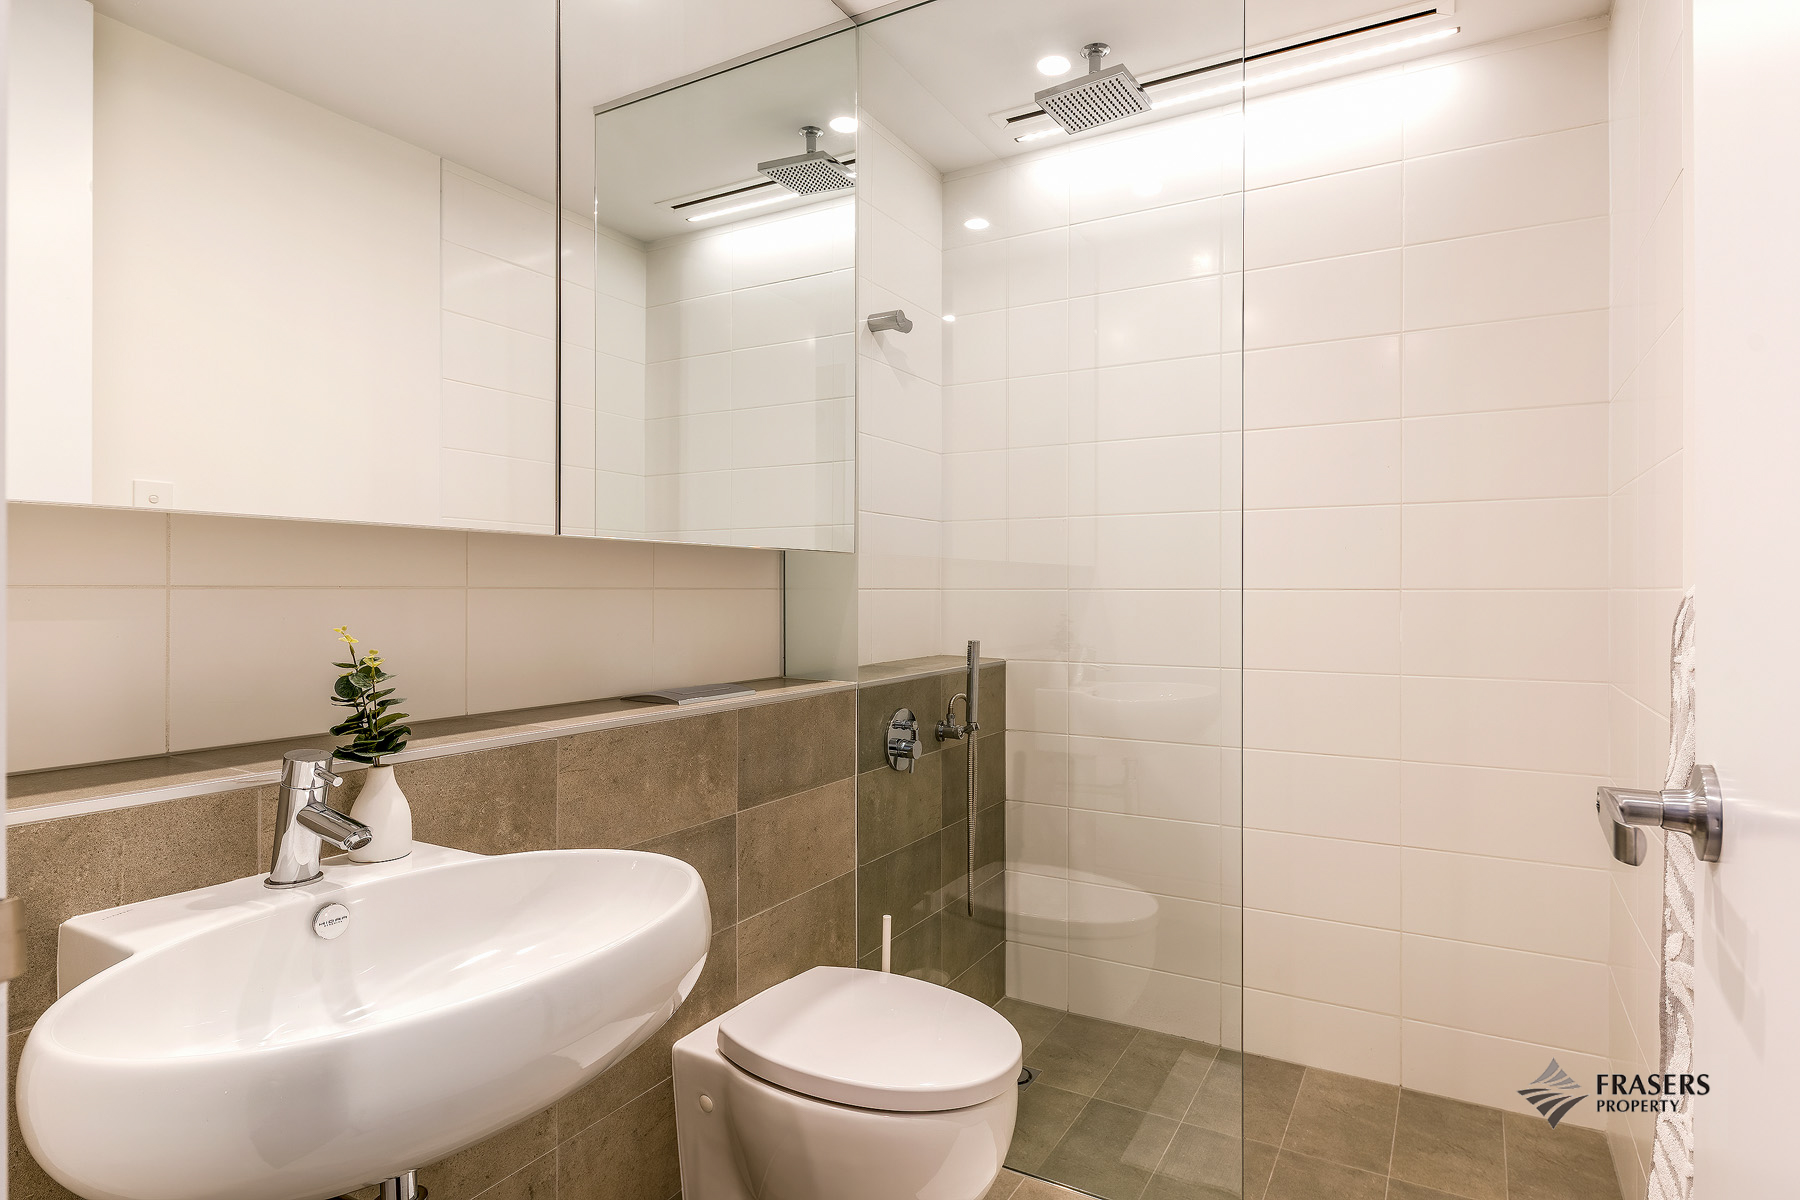 Bathroom at Riverside Parade Apartments by Fraser, Centre, Perth